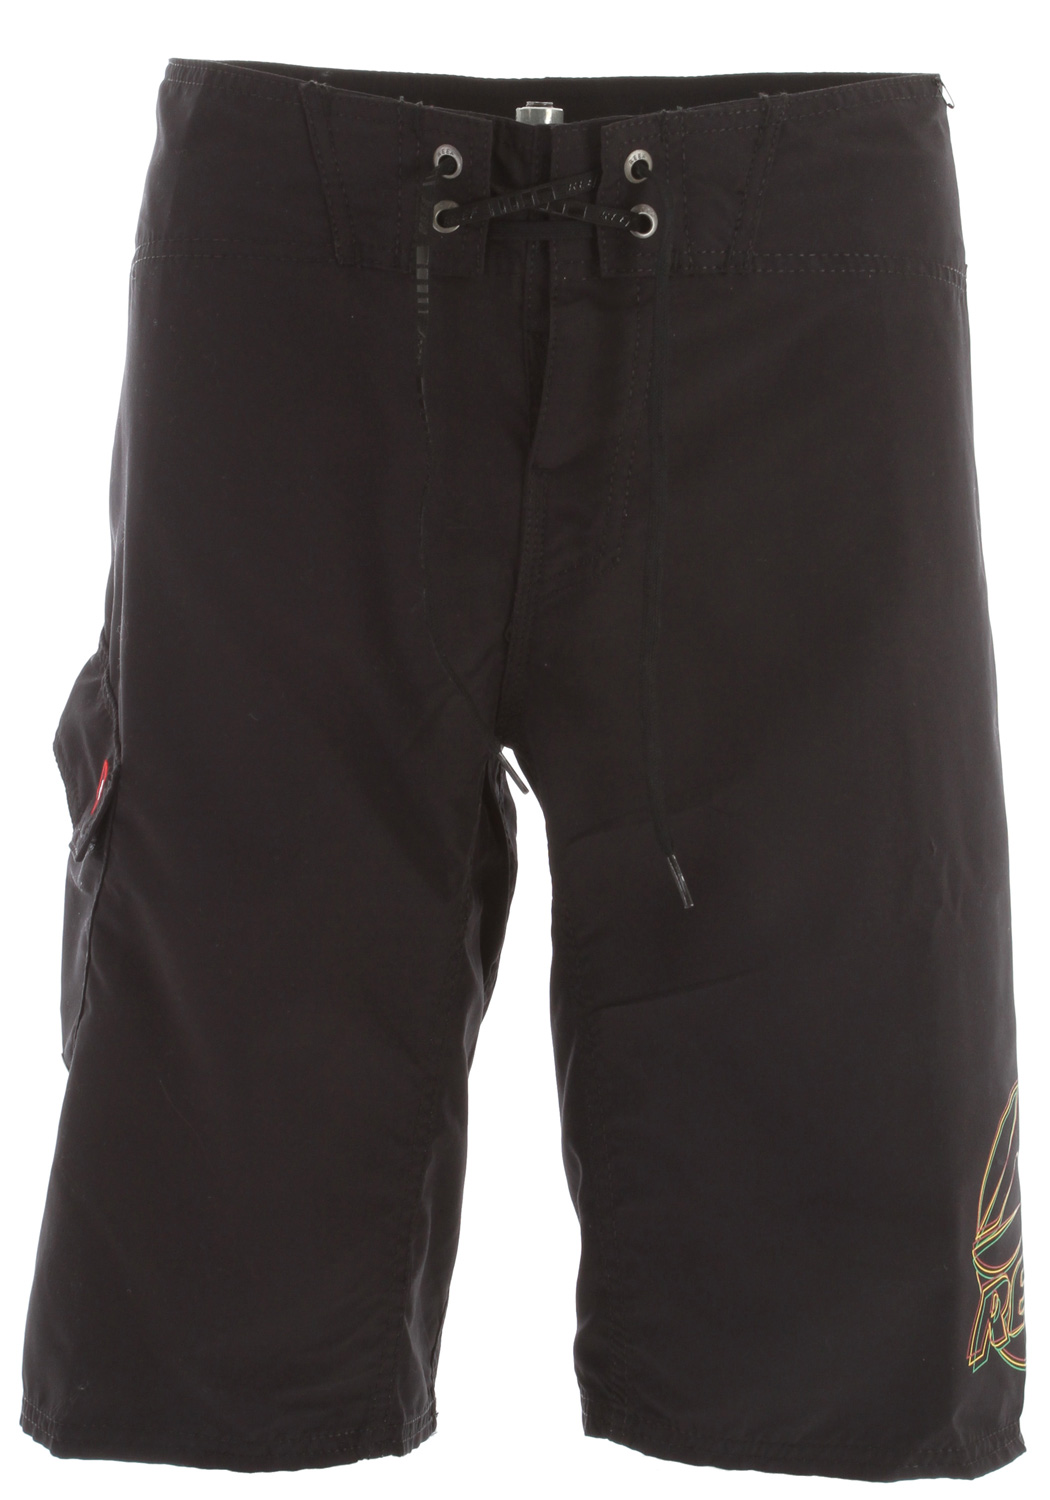 "Surf Key Features of the Reef Ponto Beach 2 Boardshorts: Pro-am microfiber 100% polyester 22"" outseam - $25.95"